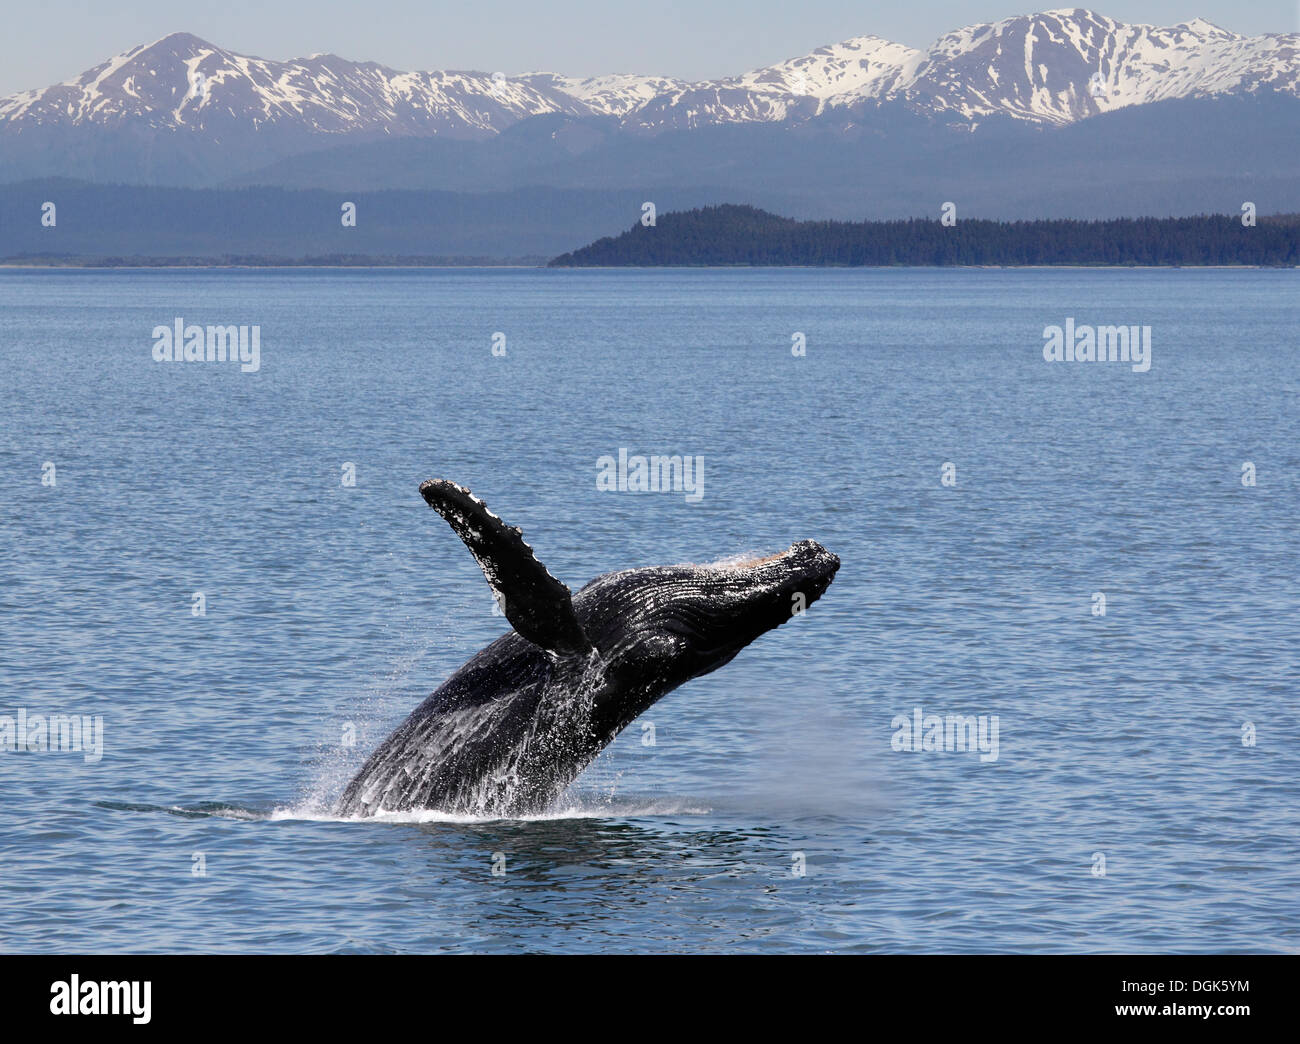 Humpback whale breaching off Icy Straits Point in Alaska. Stock Photo